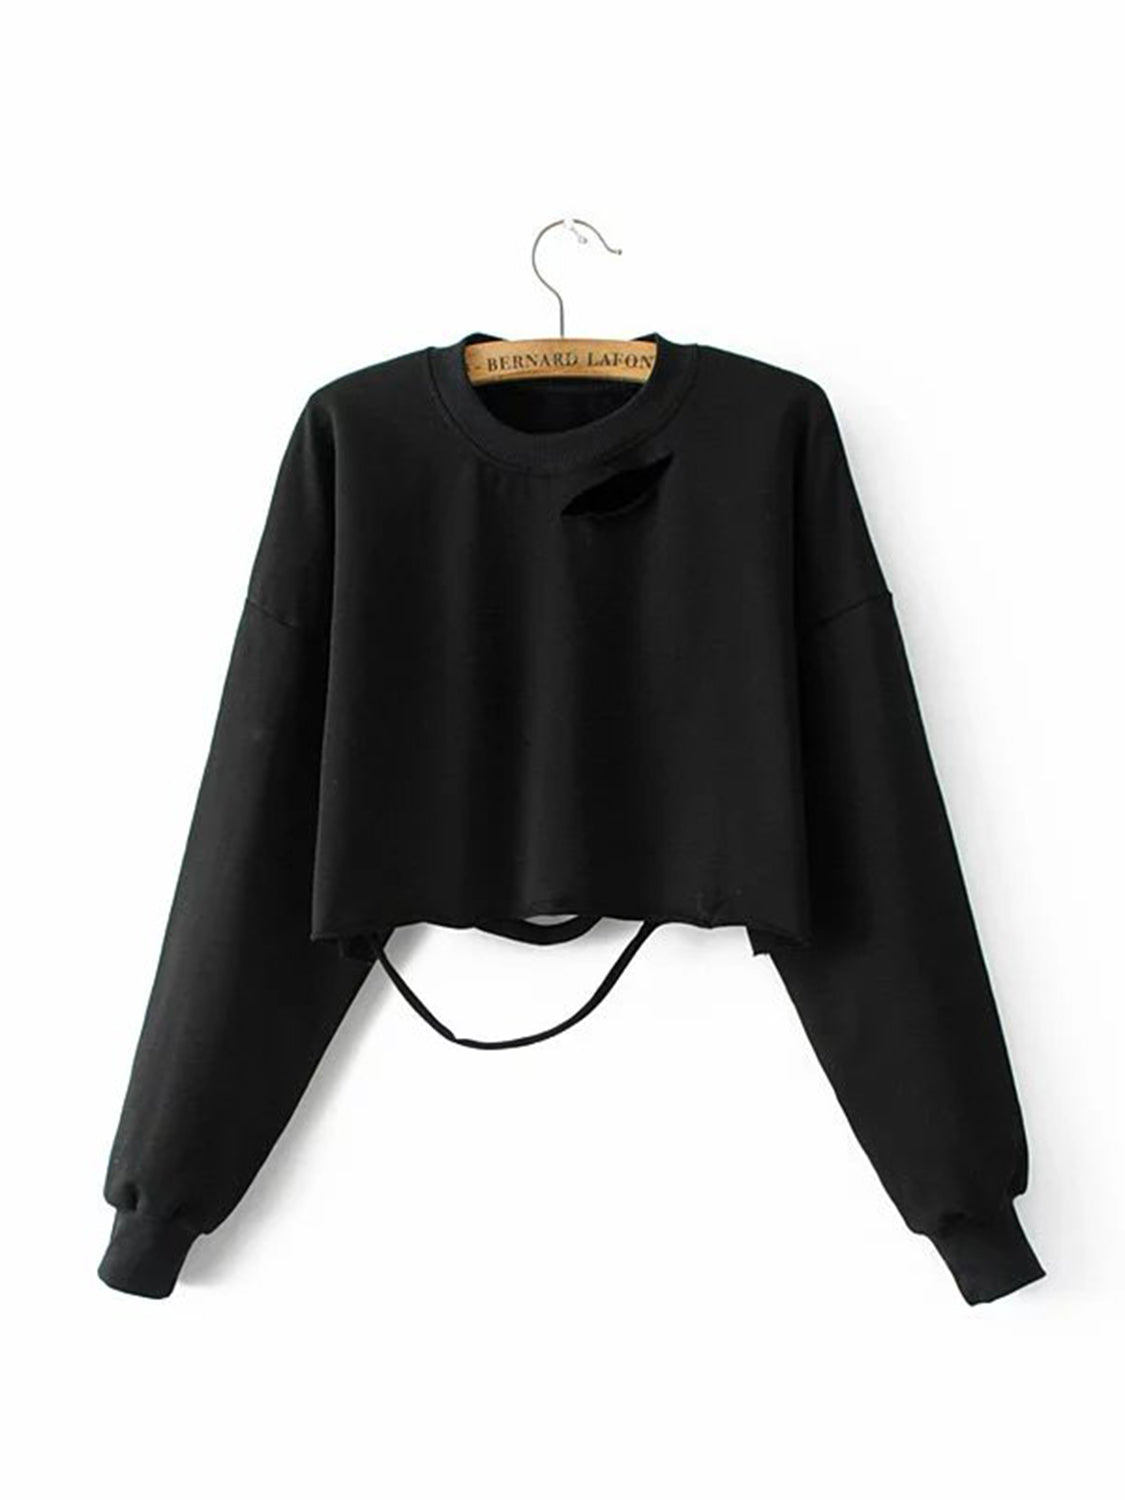 Black Women Crop Sweatshirt Cut Out Detail Long Sleeve